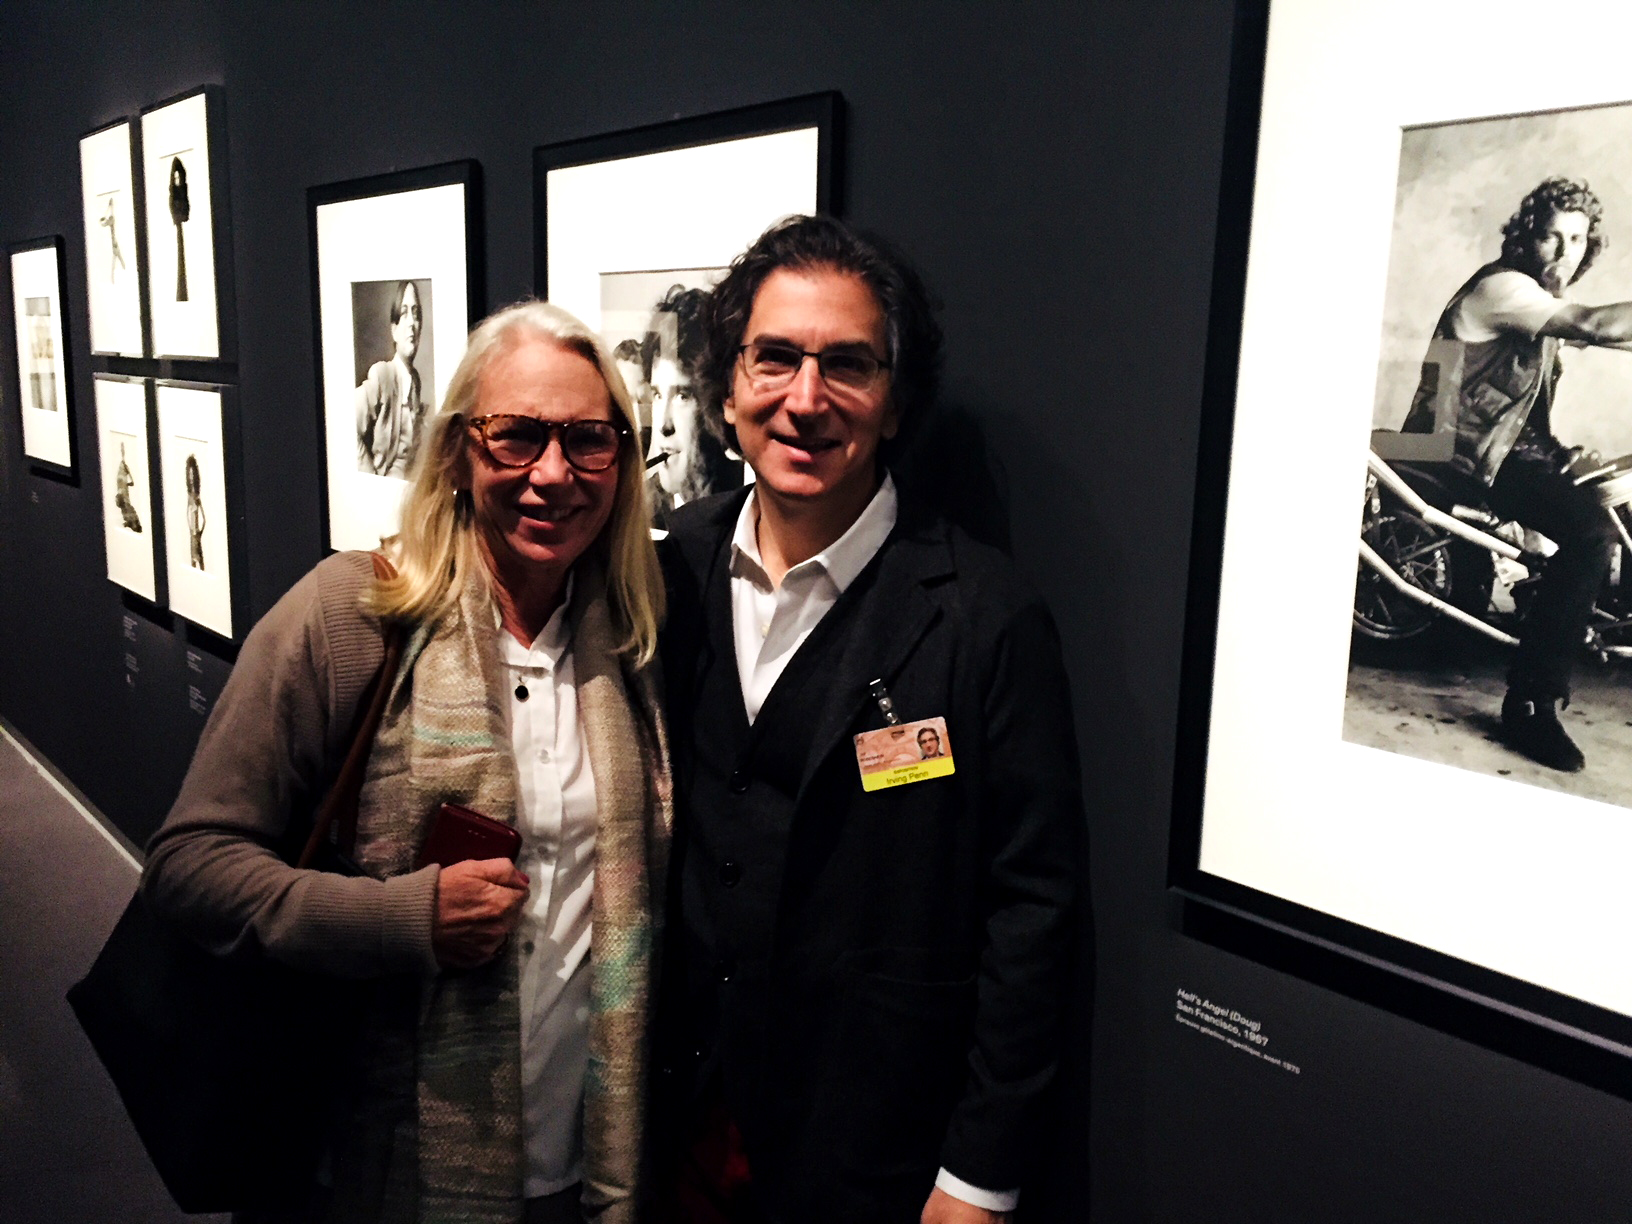 Touring the Irving Penn retrospective at the Grand Palais with curator Jeff Rosenheim